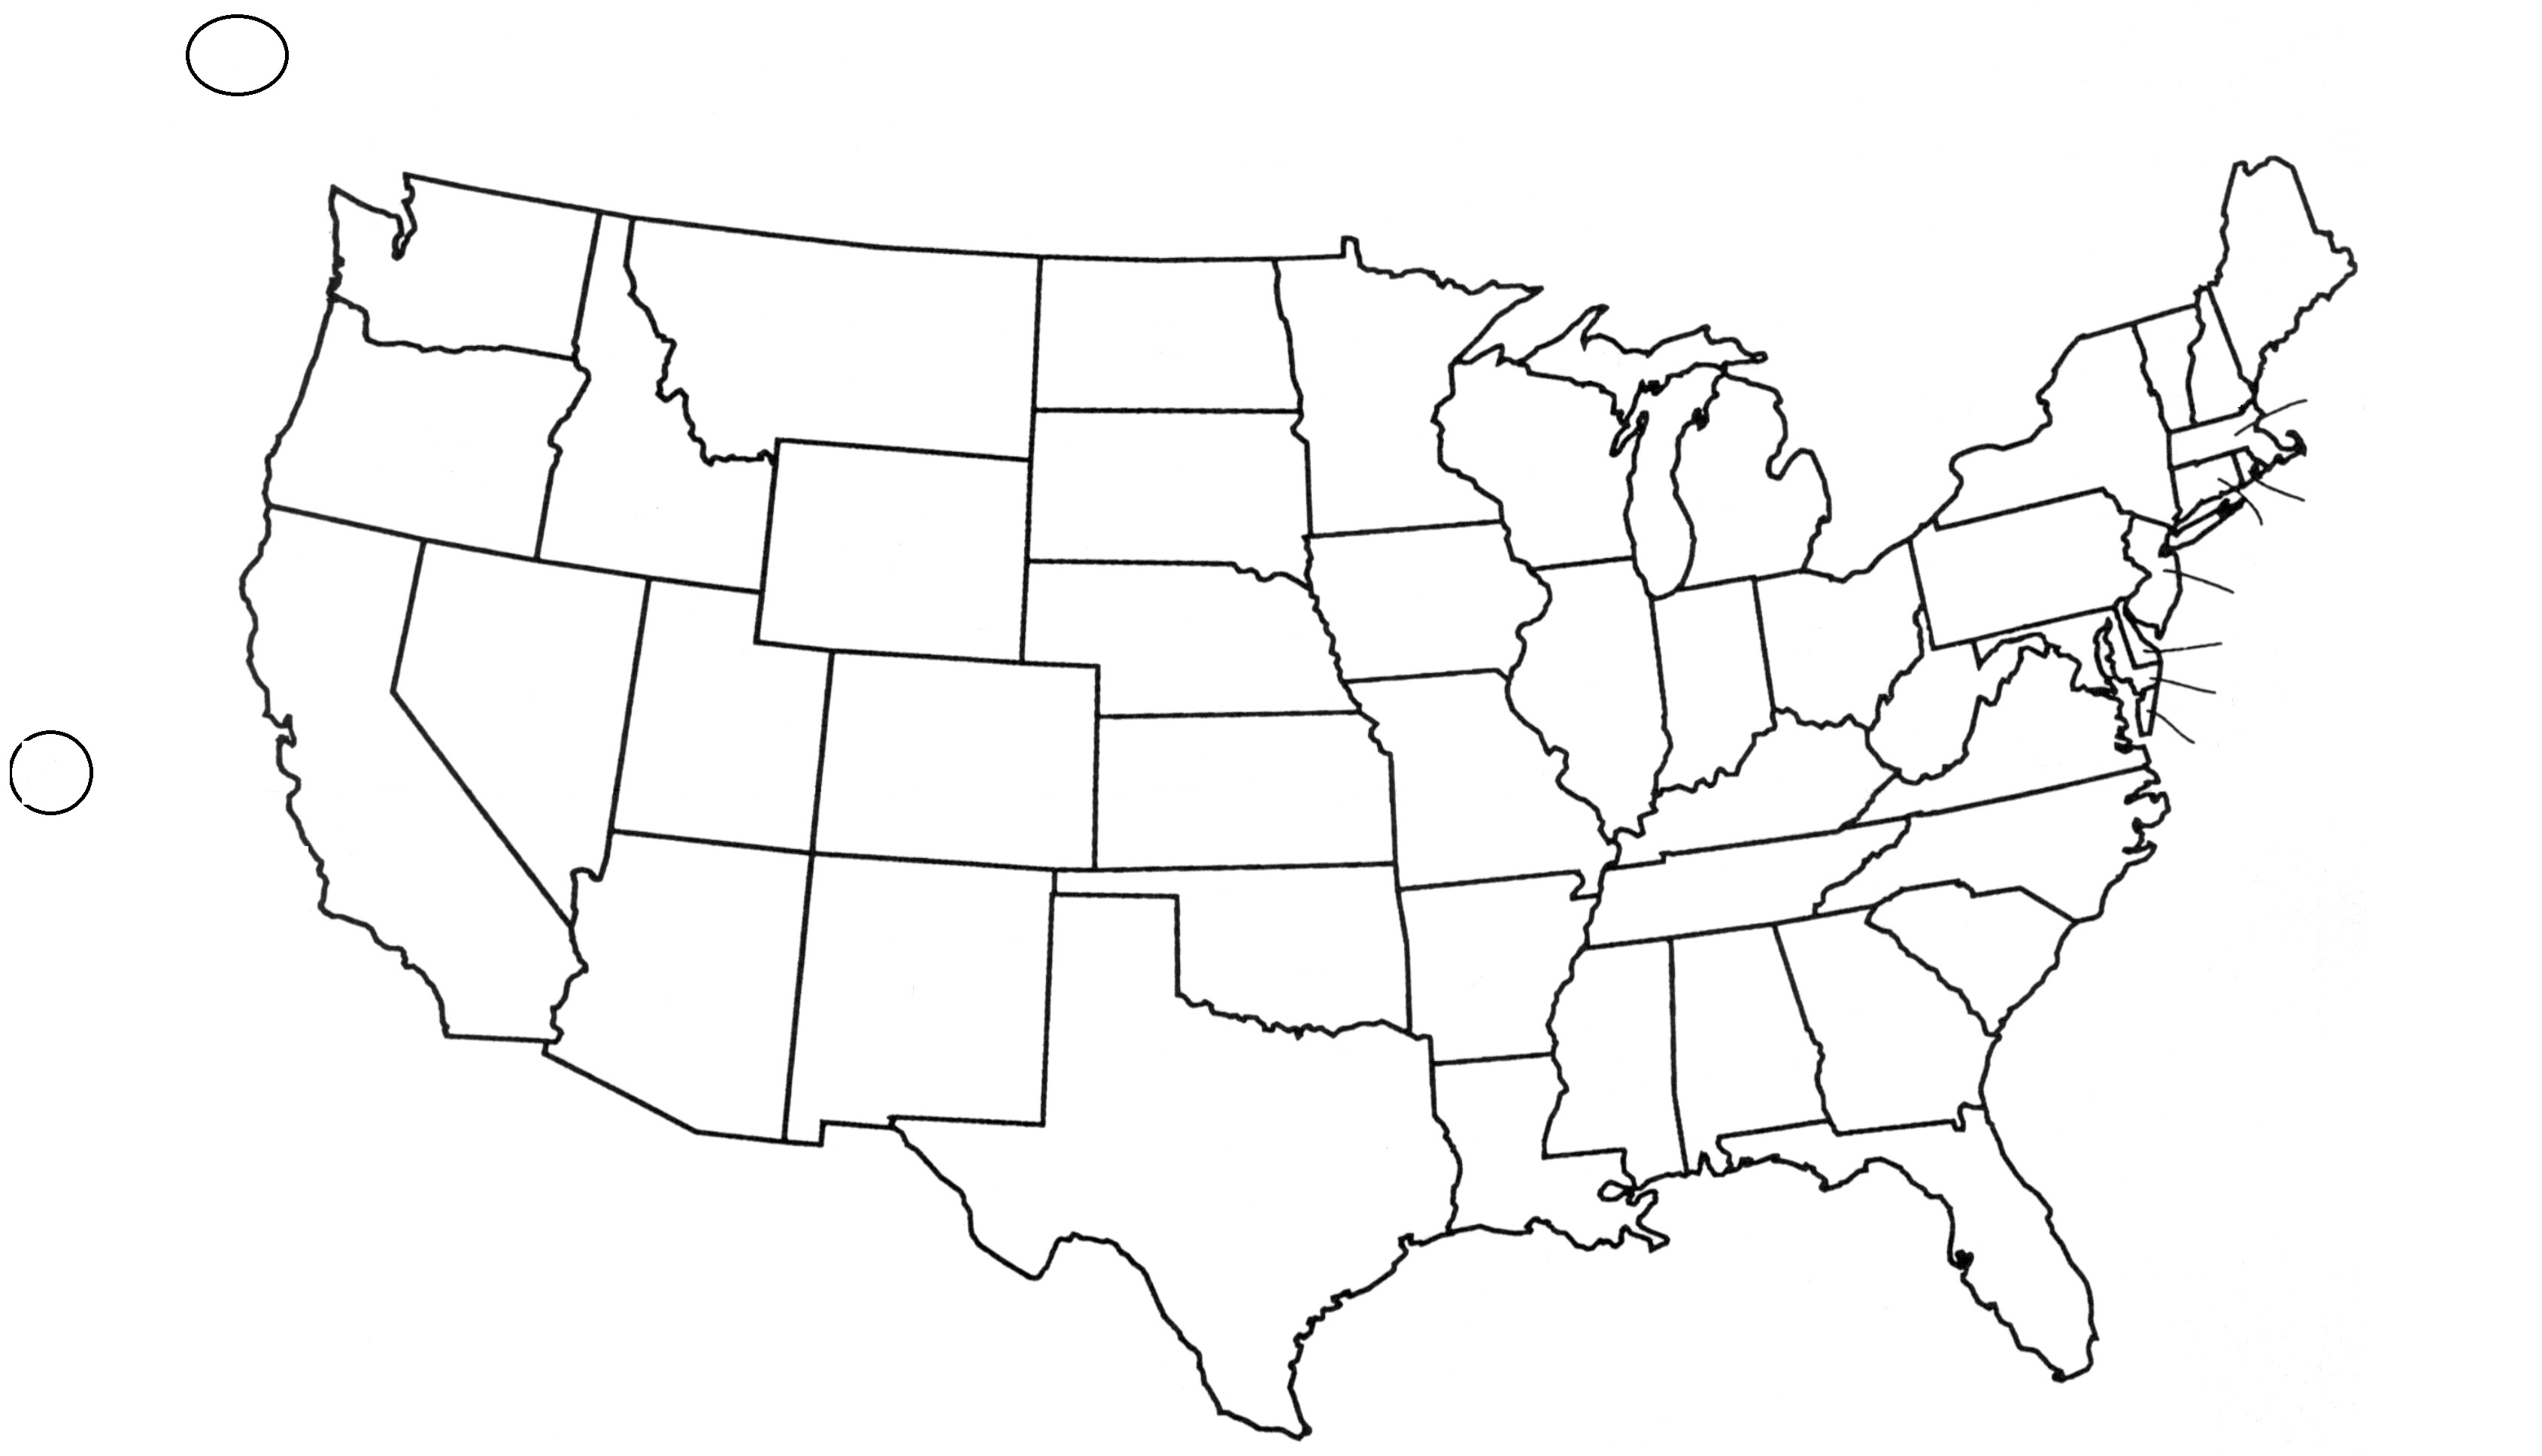 Blank State Map Of Usa Blank State Map Of Usa Printable State - Us trails map quiz